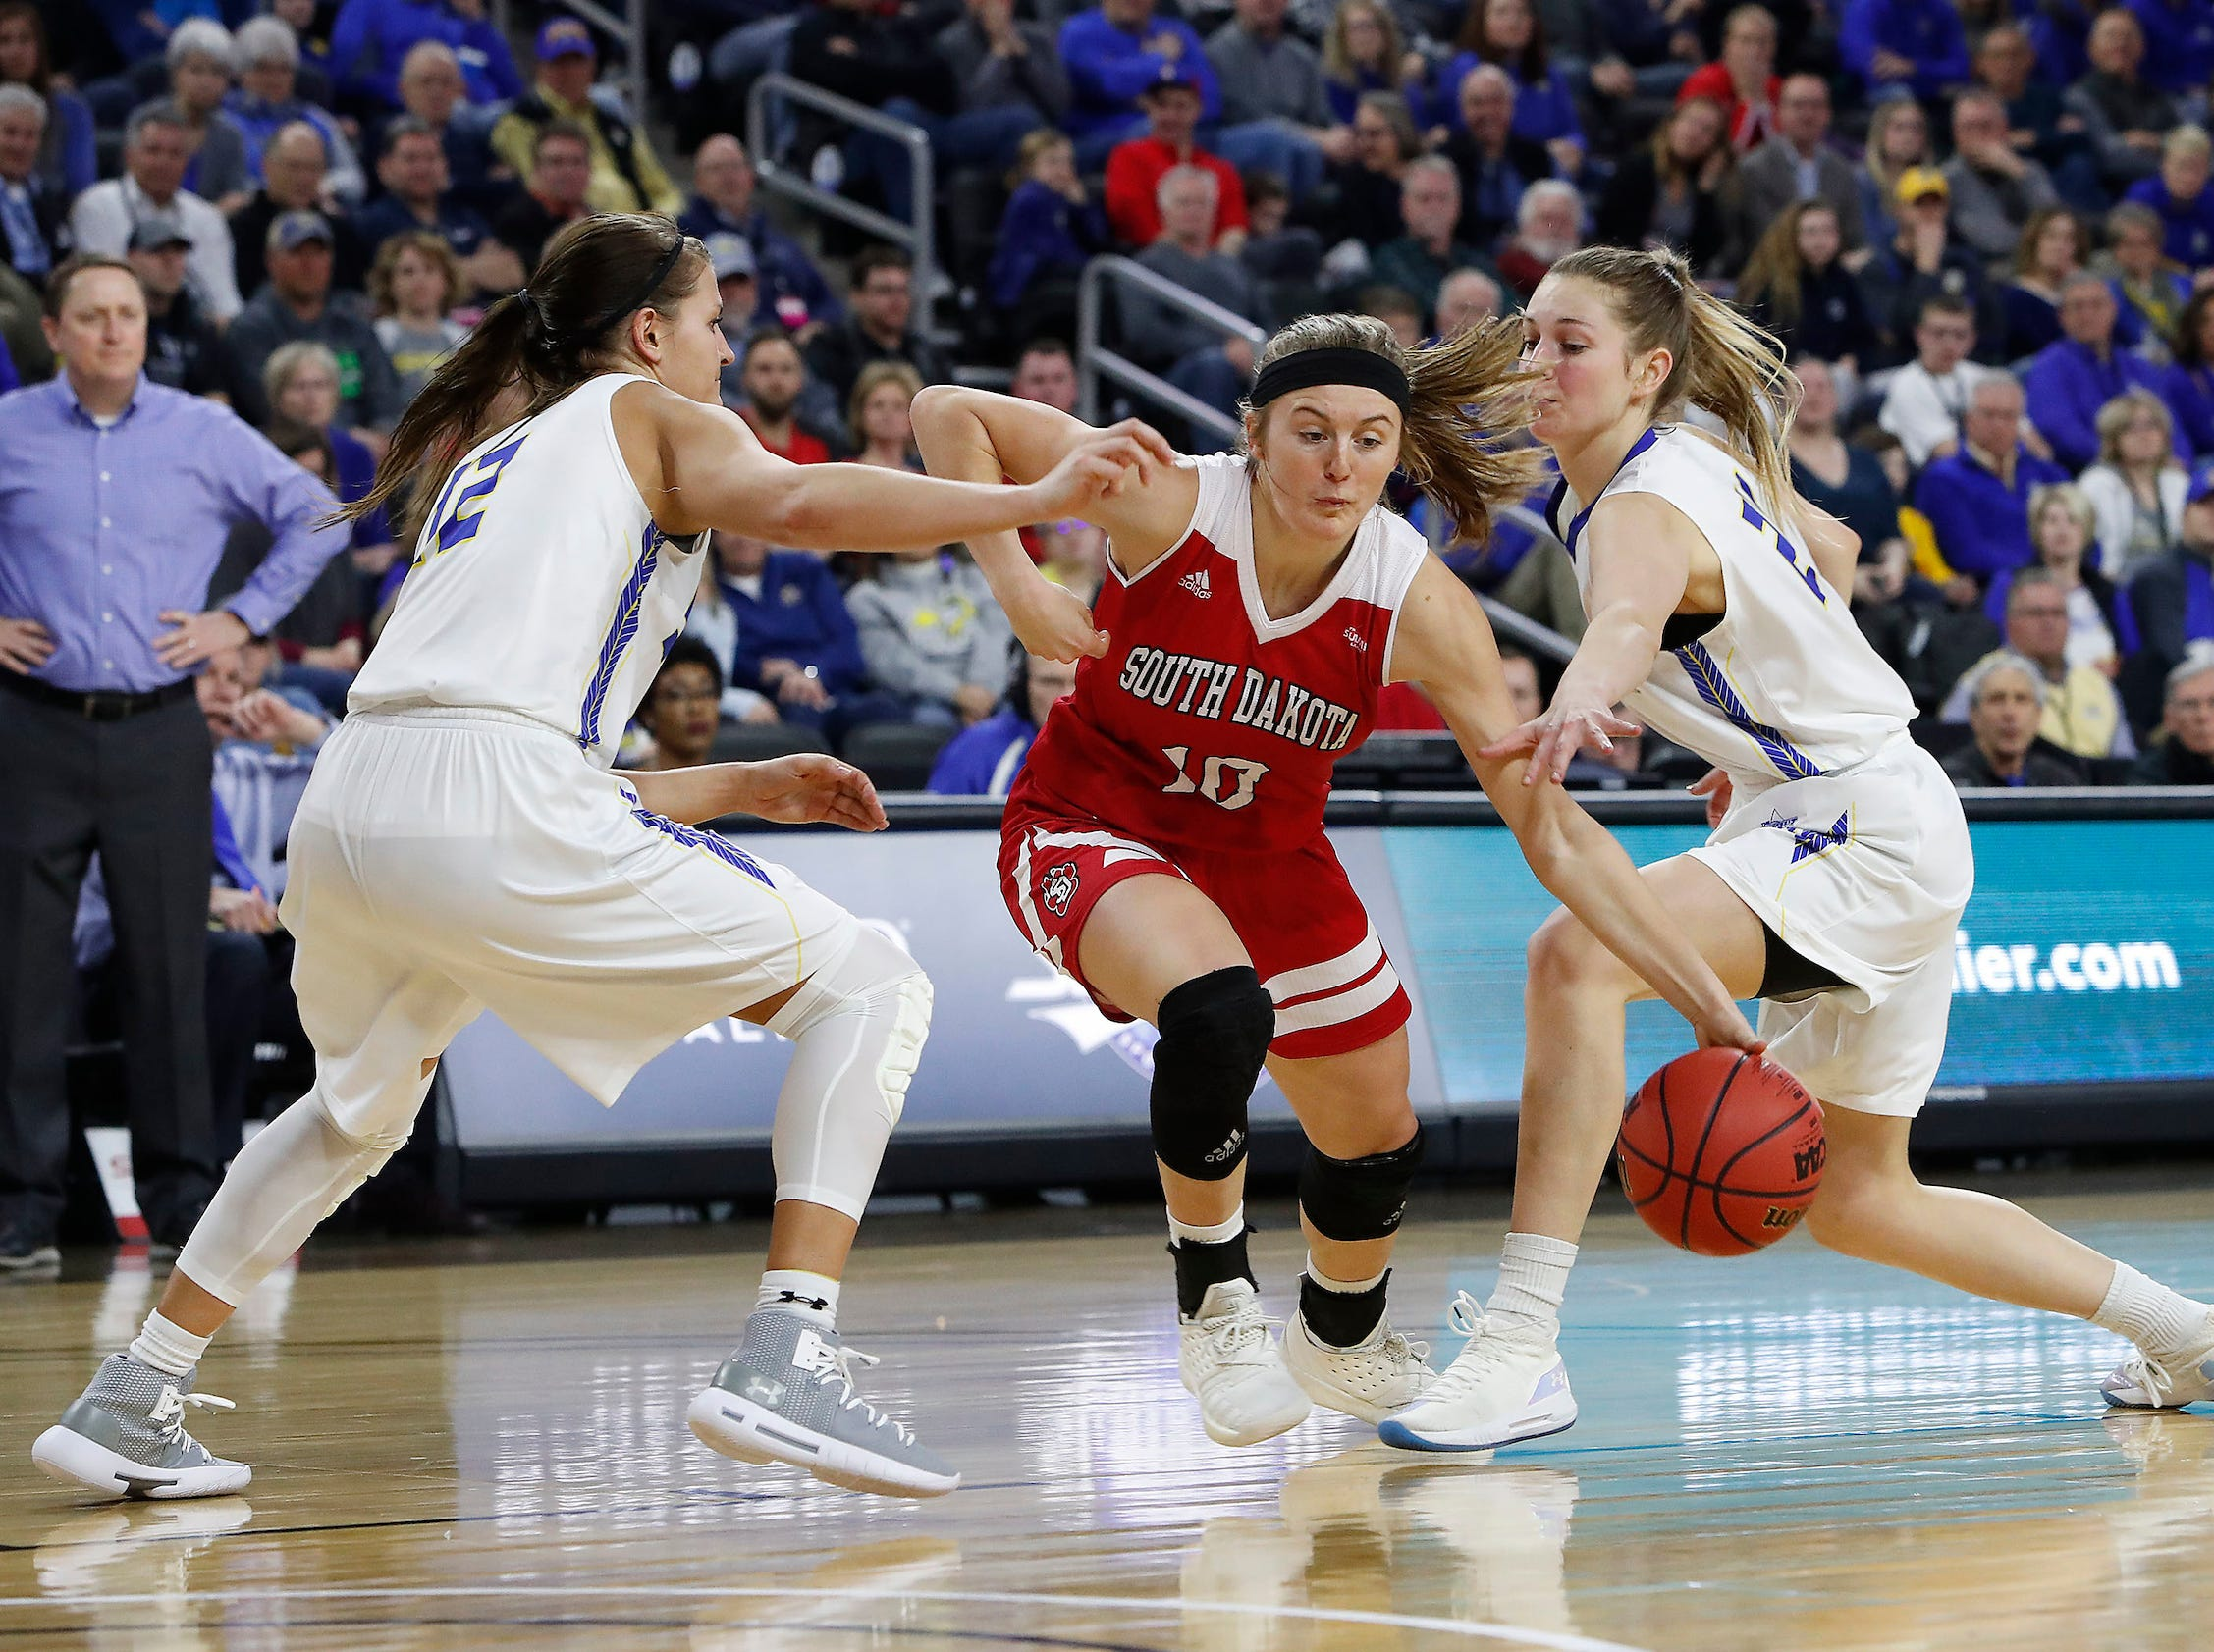 SIOUX FALLS, SD - MARCH 11: Allison Arens #10 from South Dakota dribbles through Macy Miller #12 and Tagyn Larson #24 from South Dakota State at the 2019 Summit League Basketball Tournament at the Denny Sanford Premier Center in Sioux Falls. (Photo by Dick Carlson/Inertia)